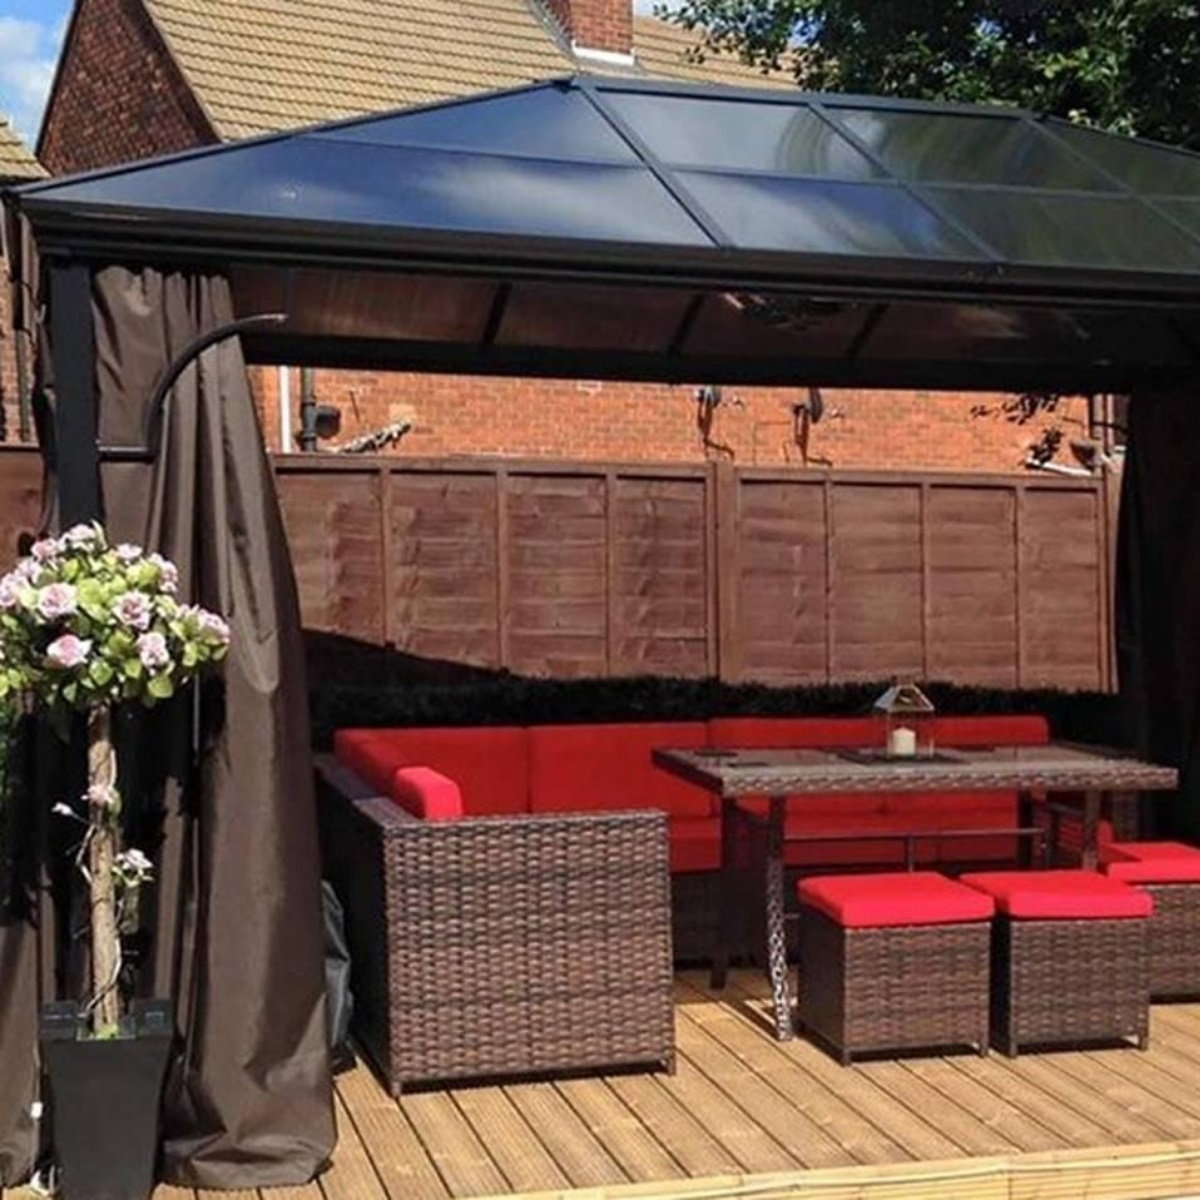 A rectangular metal gazebo with a polycarbonate pitched roof